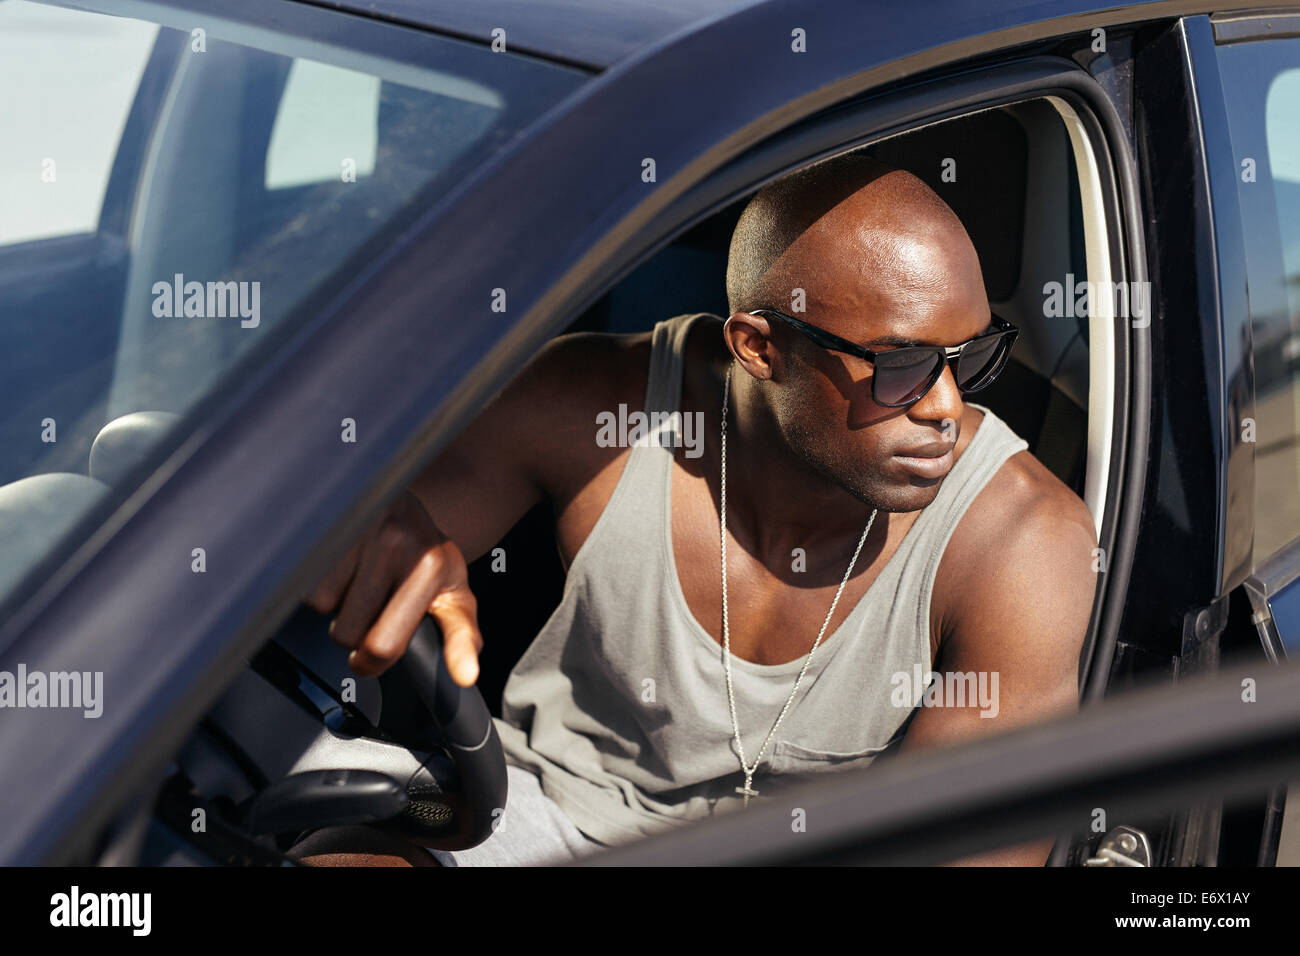 Image of young man in car looking away. Stylish African guy on road trip. - Stock Image